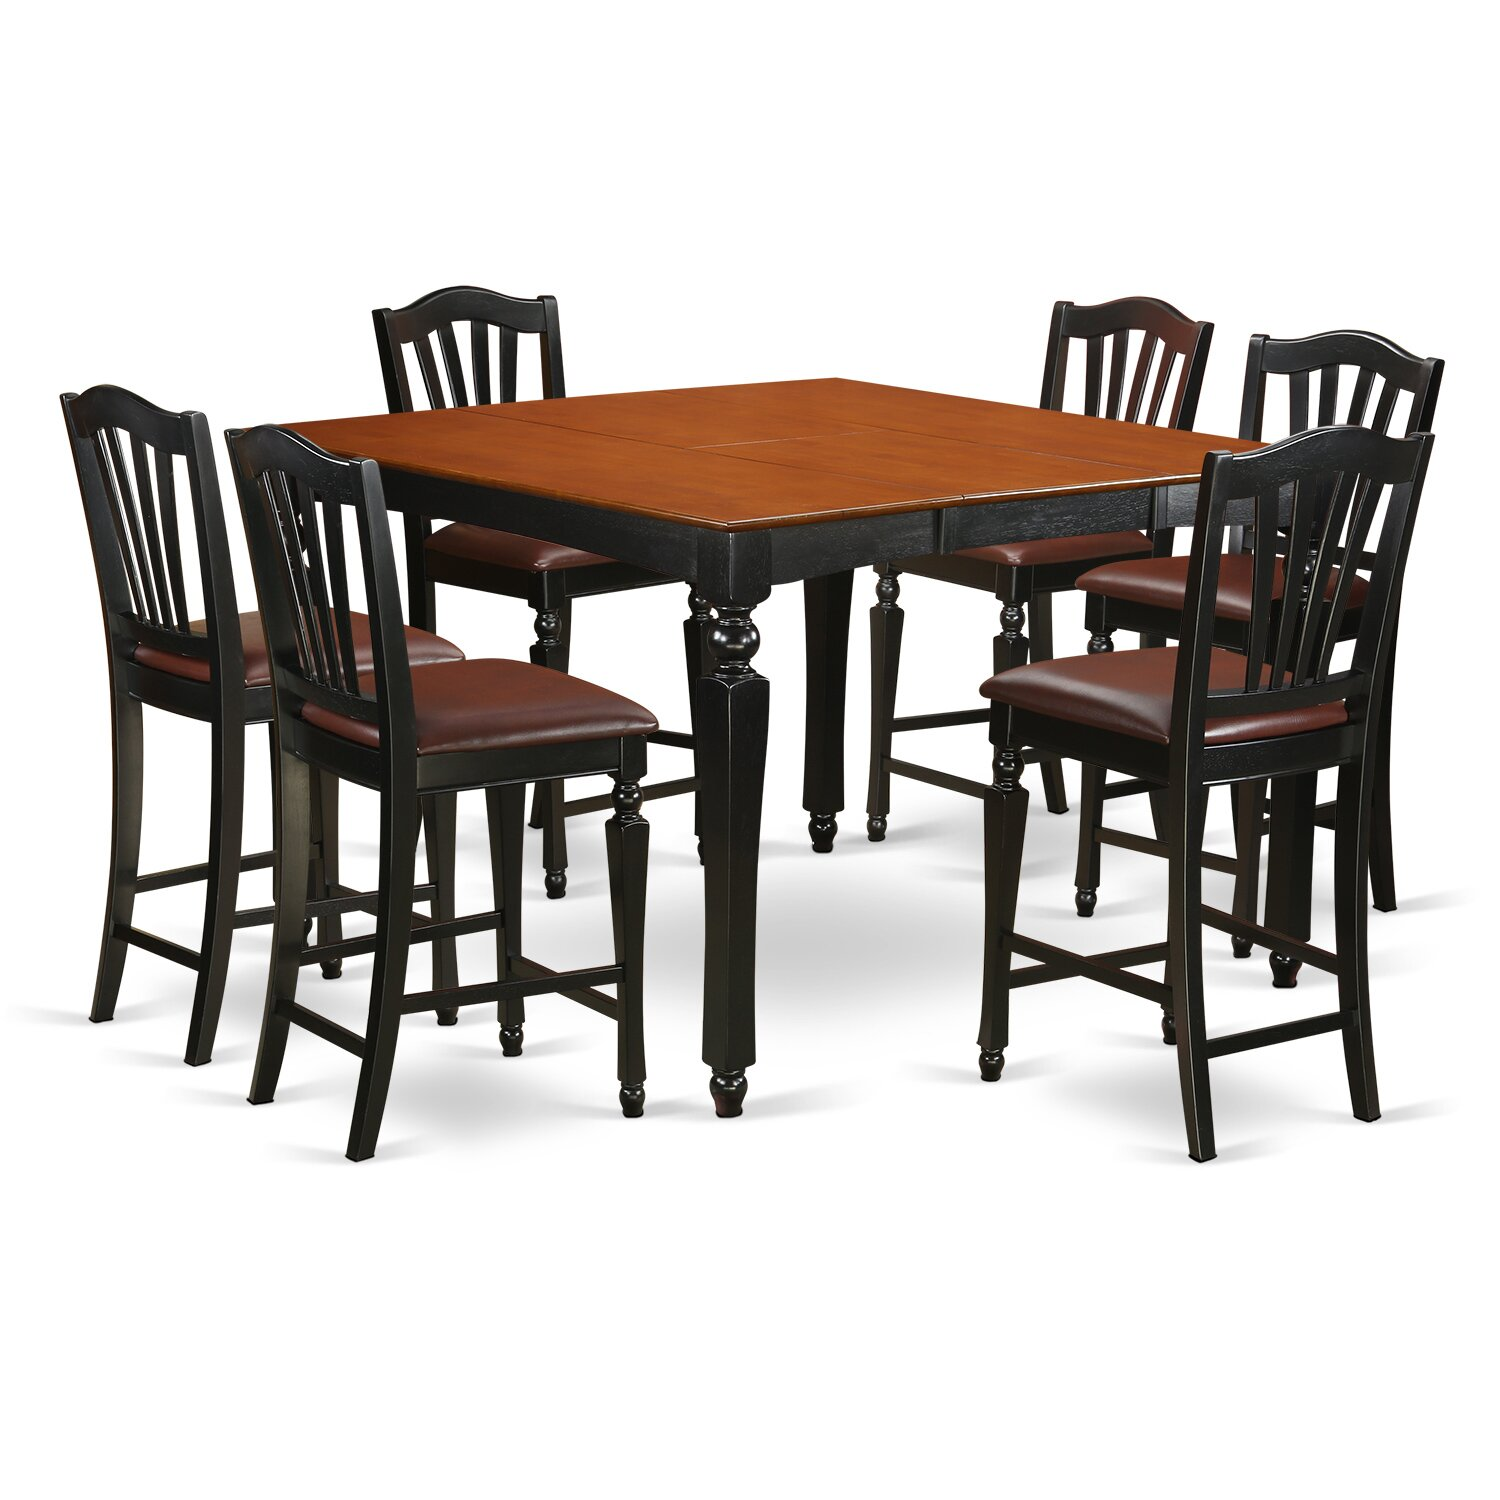 East west chelsea 7 piece counter height dining set for Furniture 7 reviews